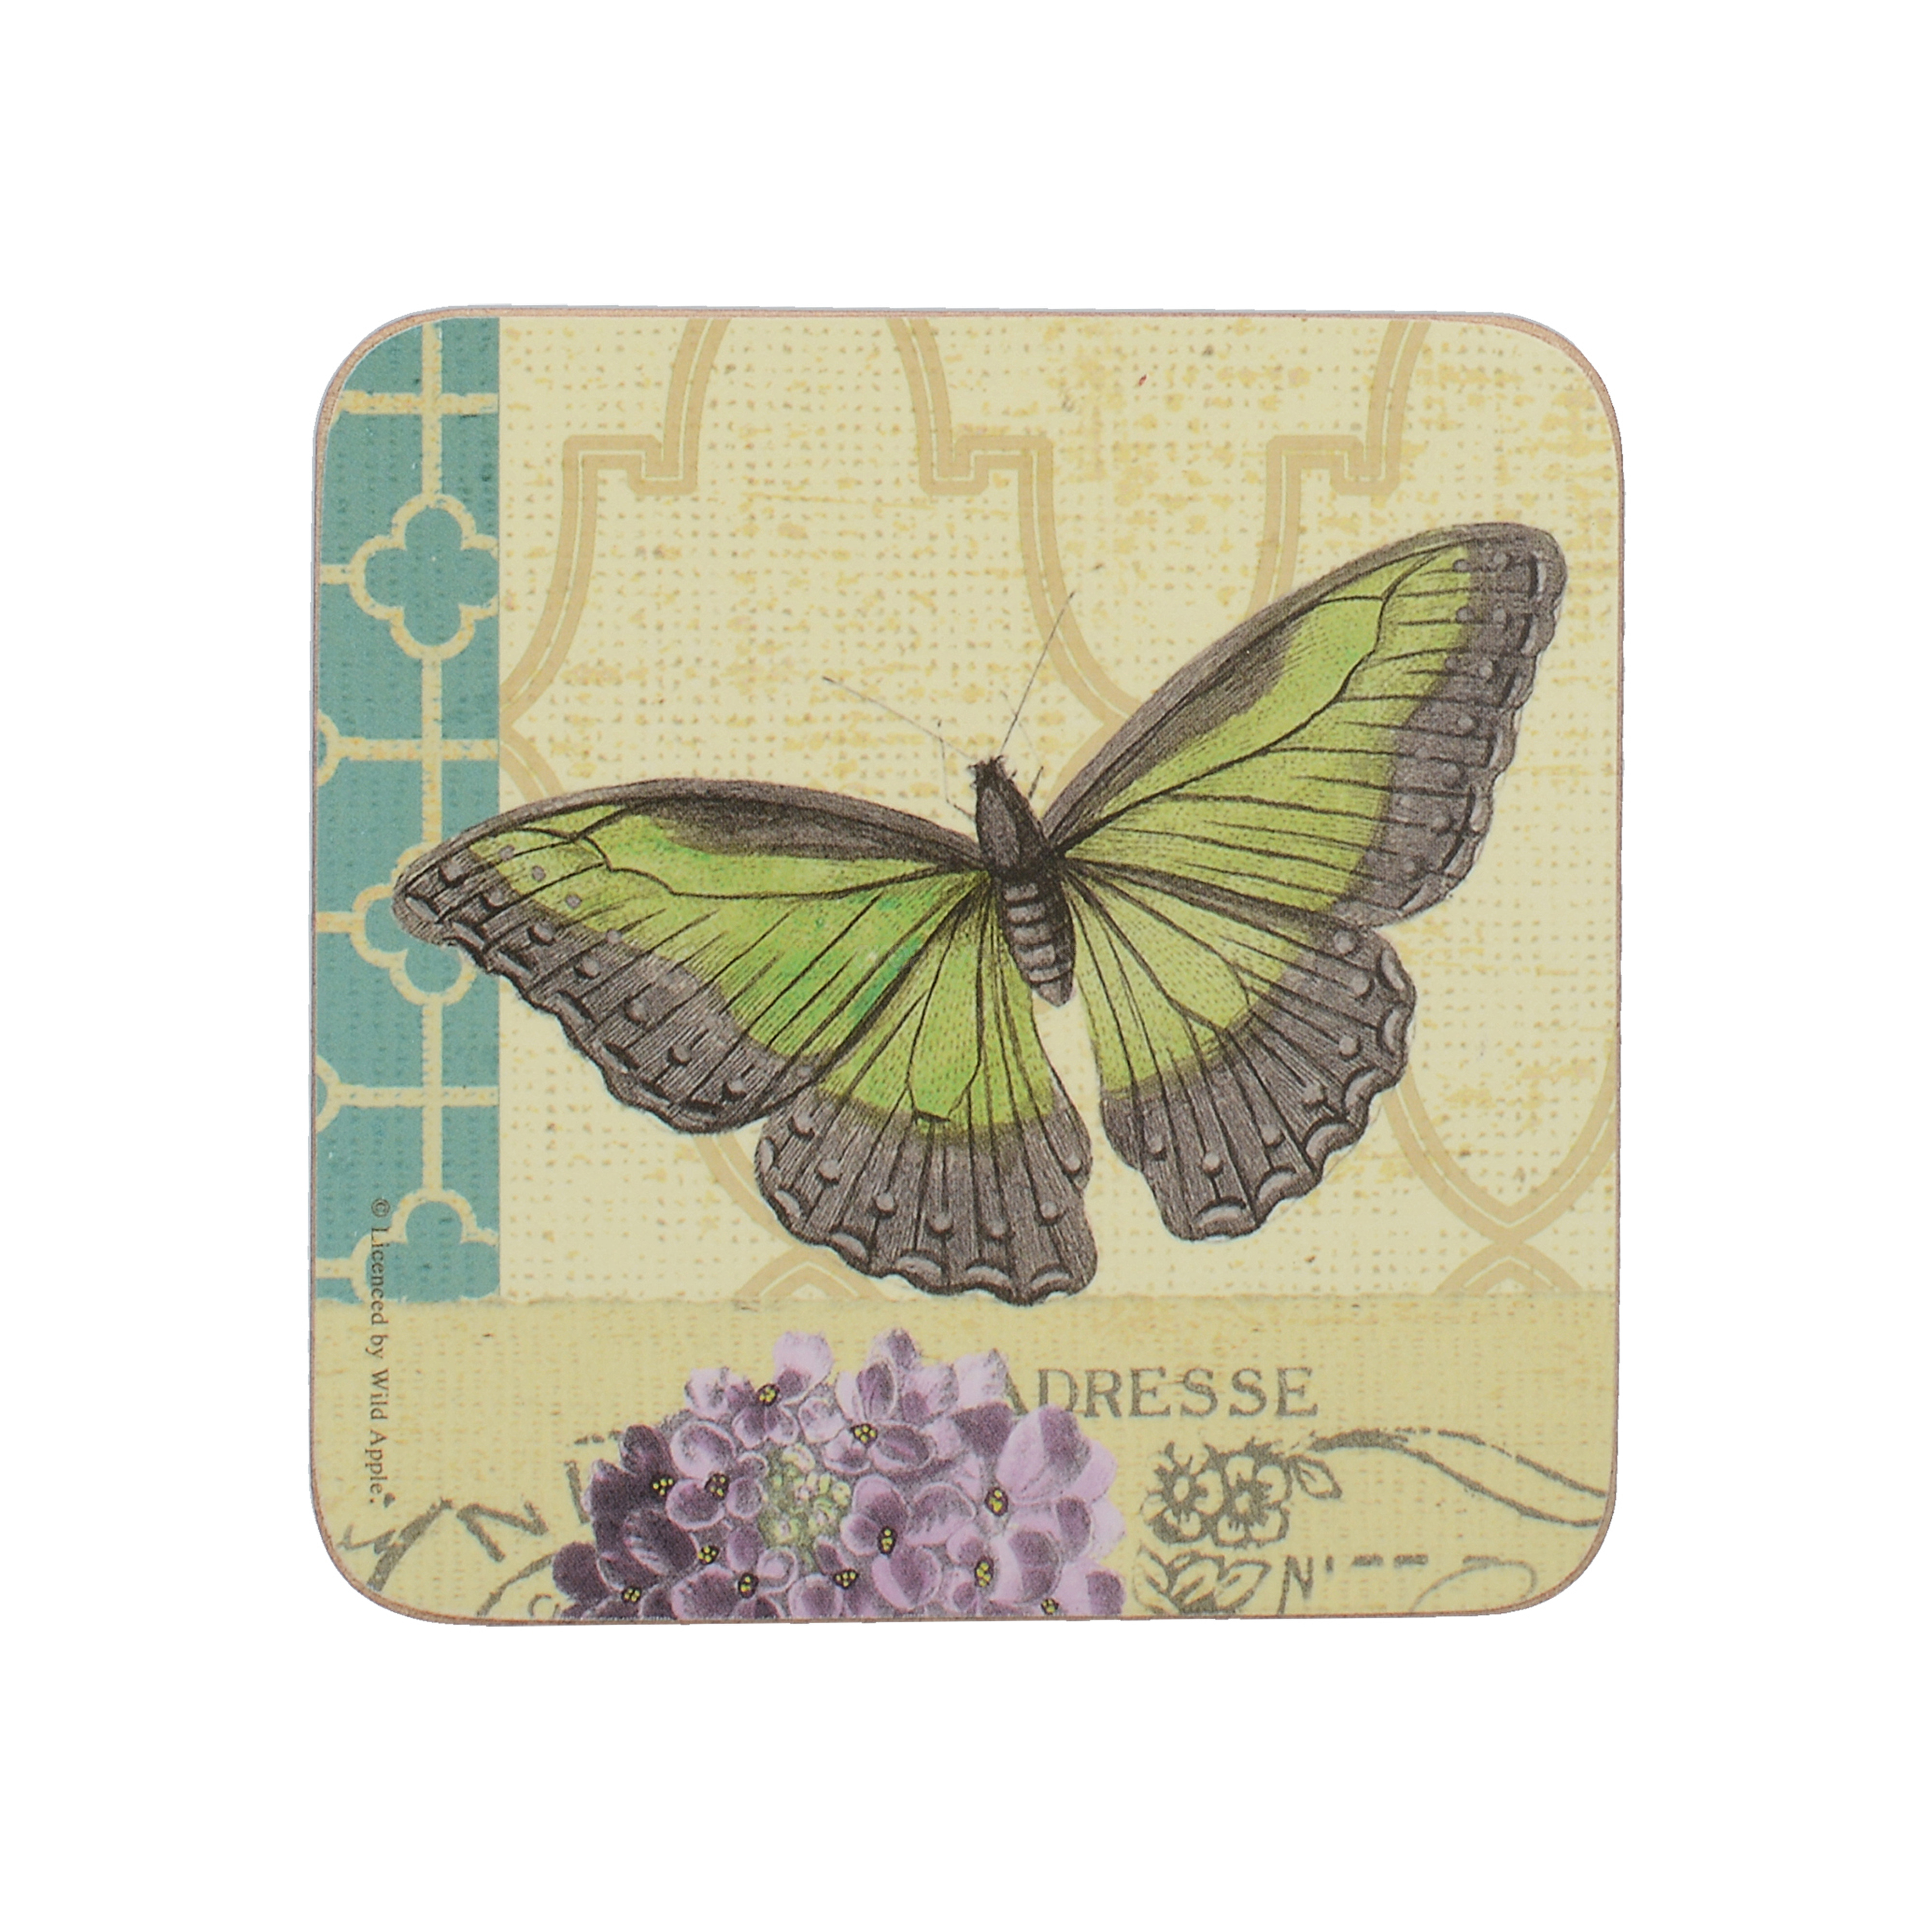 Colourful Butterfly Design Cork Backed Drinks Table Coasters Mats Set of 4